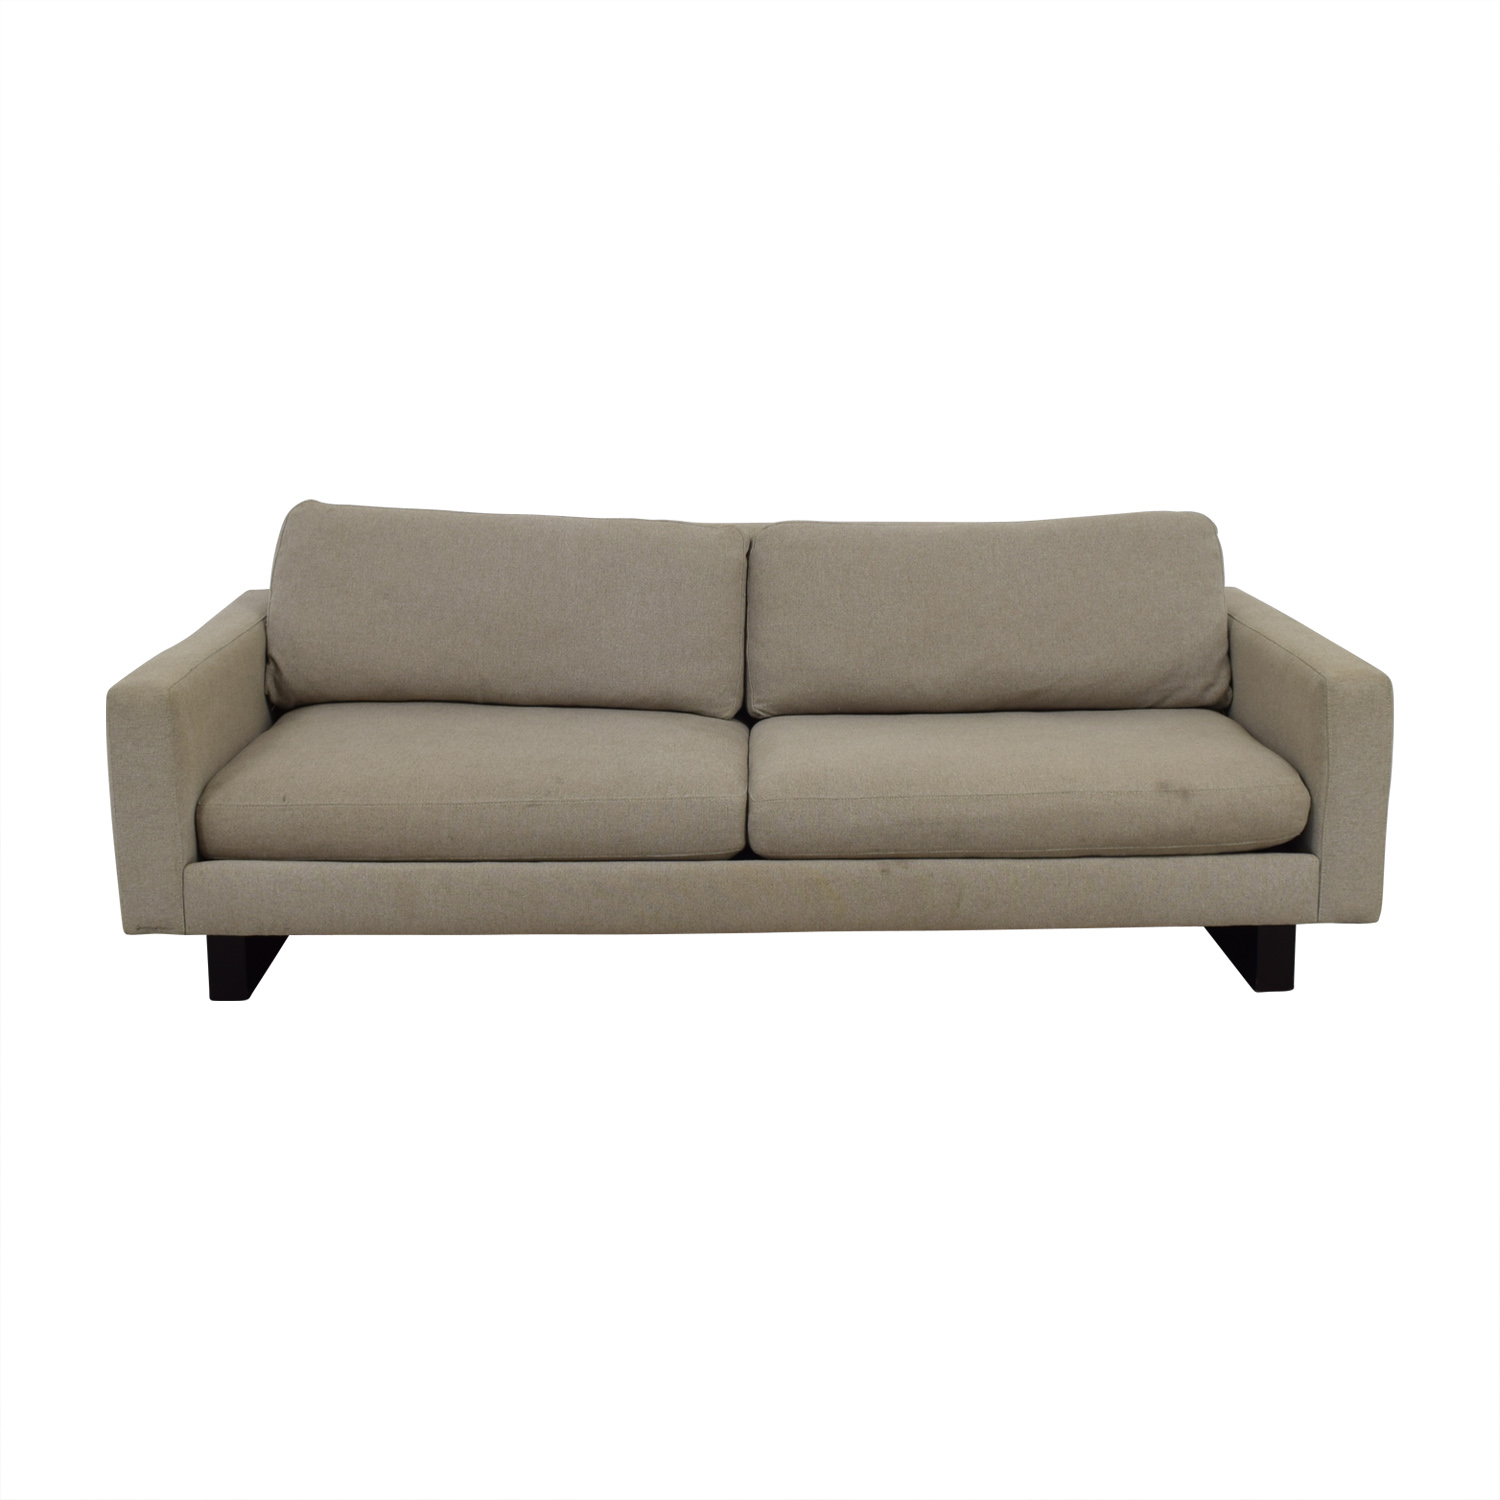 Room & Board Beige Hess Two-Cushion Sofa / Sofas